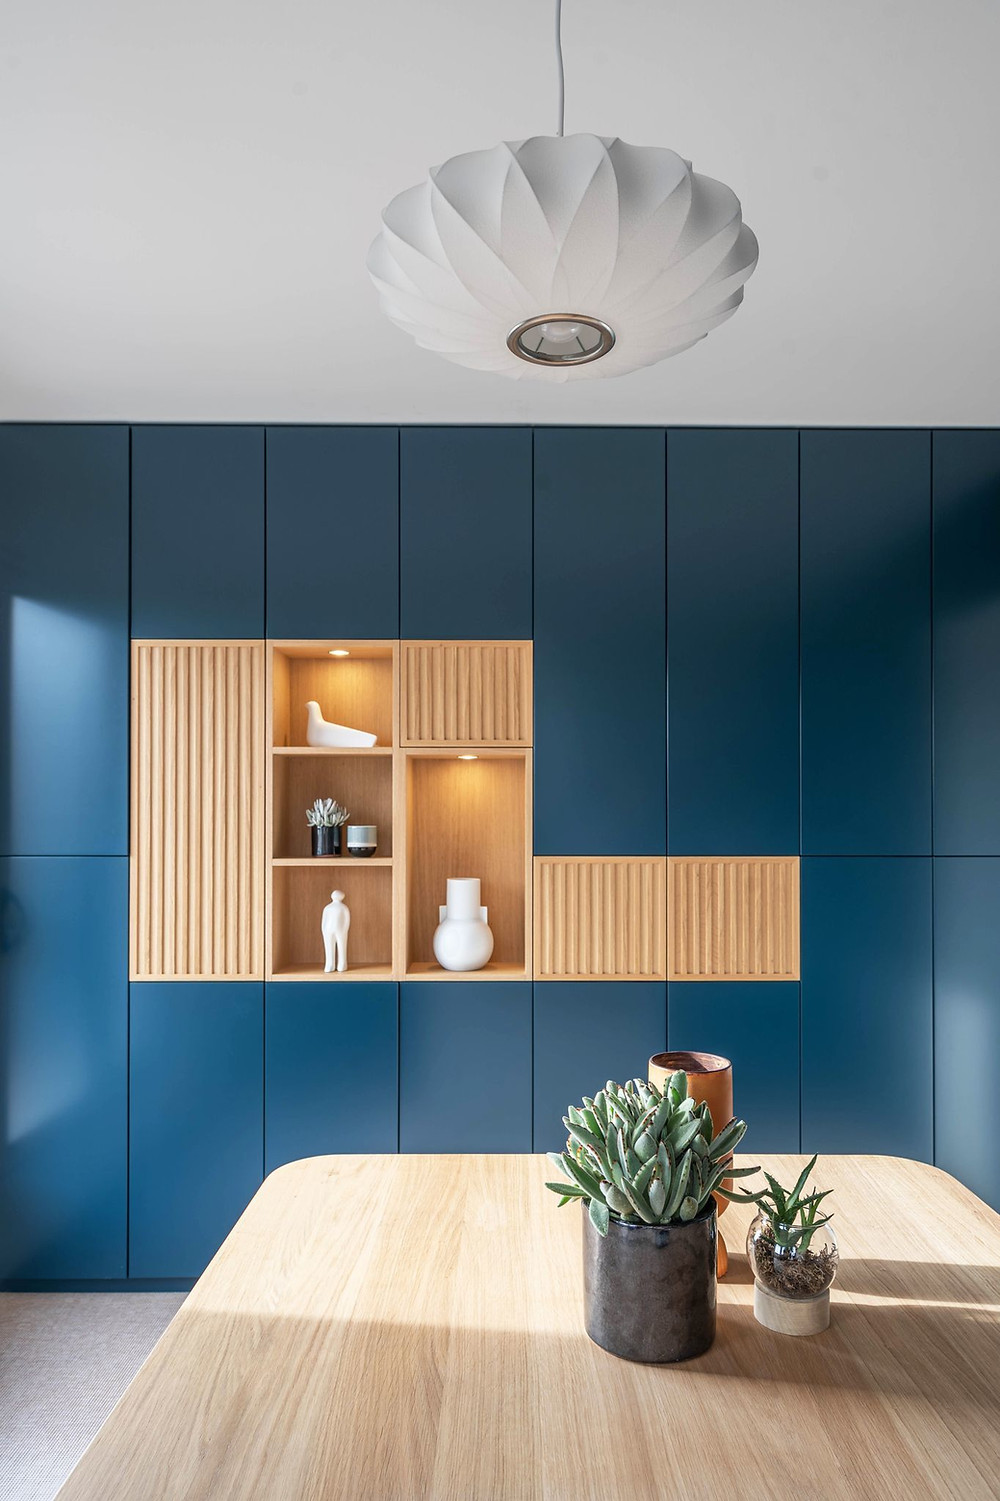 Wall to wall storage in blue colour with oak insert shelving